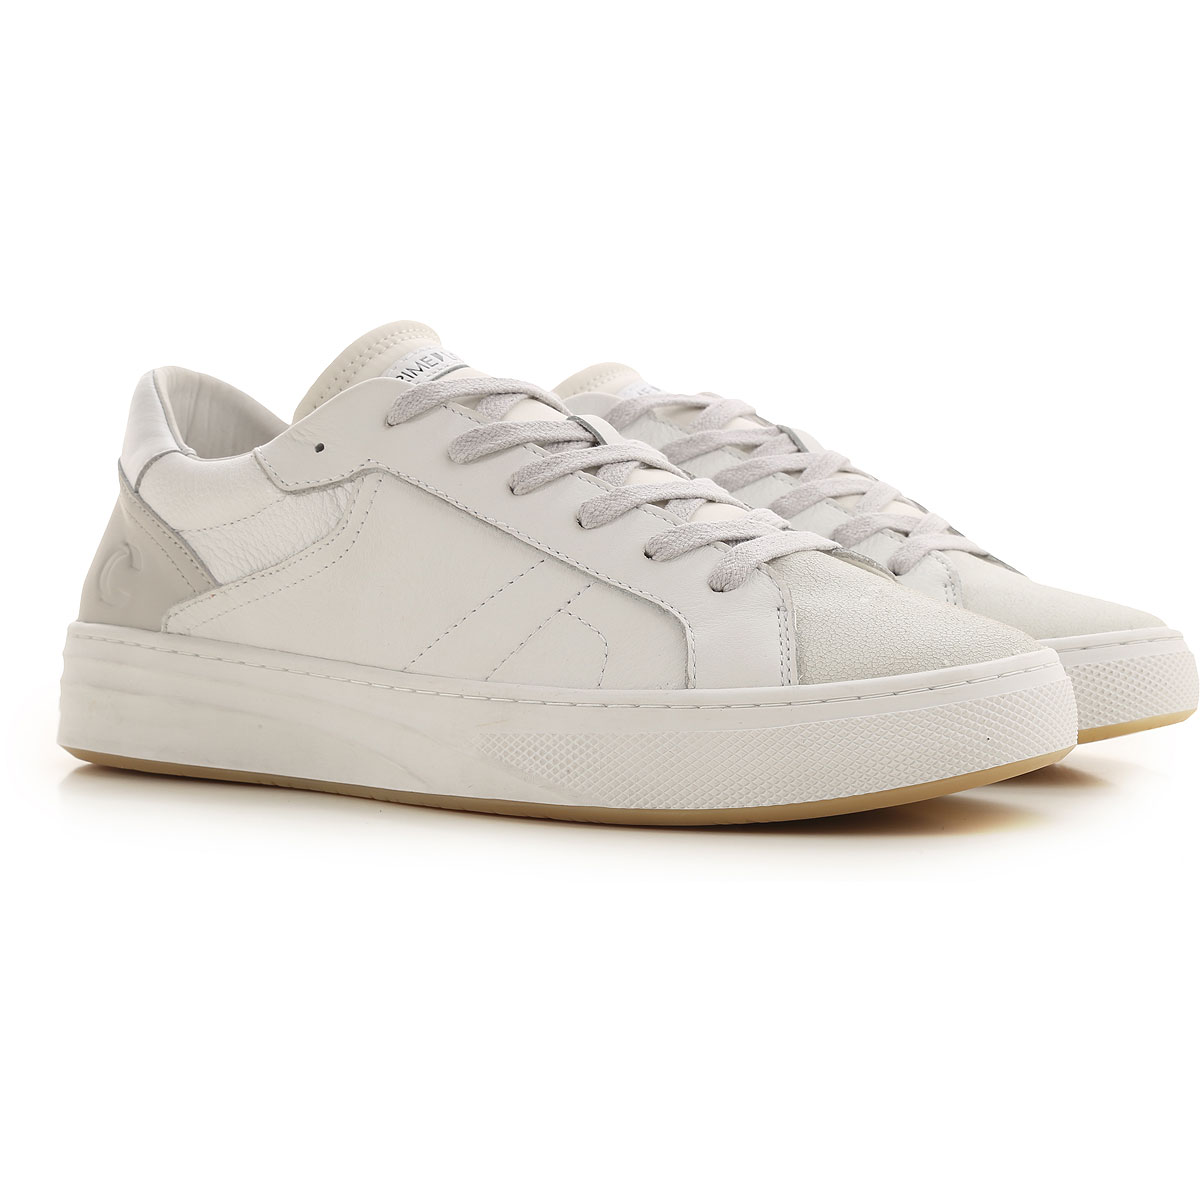 Crime Sneakers for Men On Sale, White, Leather, 2019, 10.5 11.5 7.5 8 9